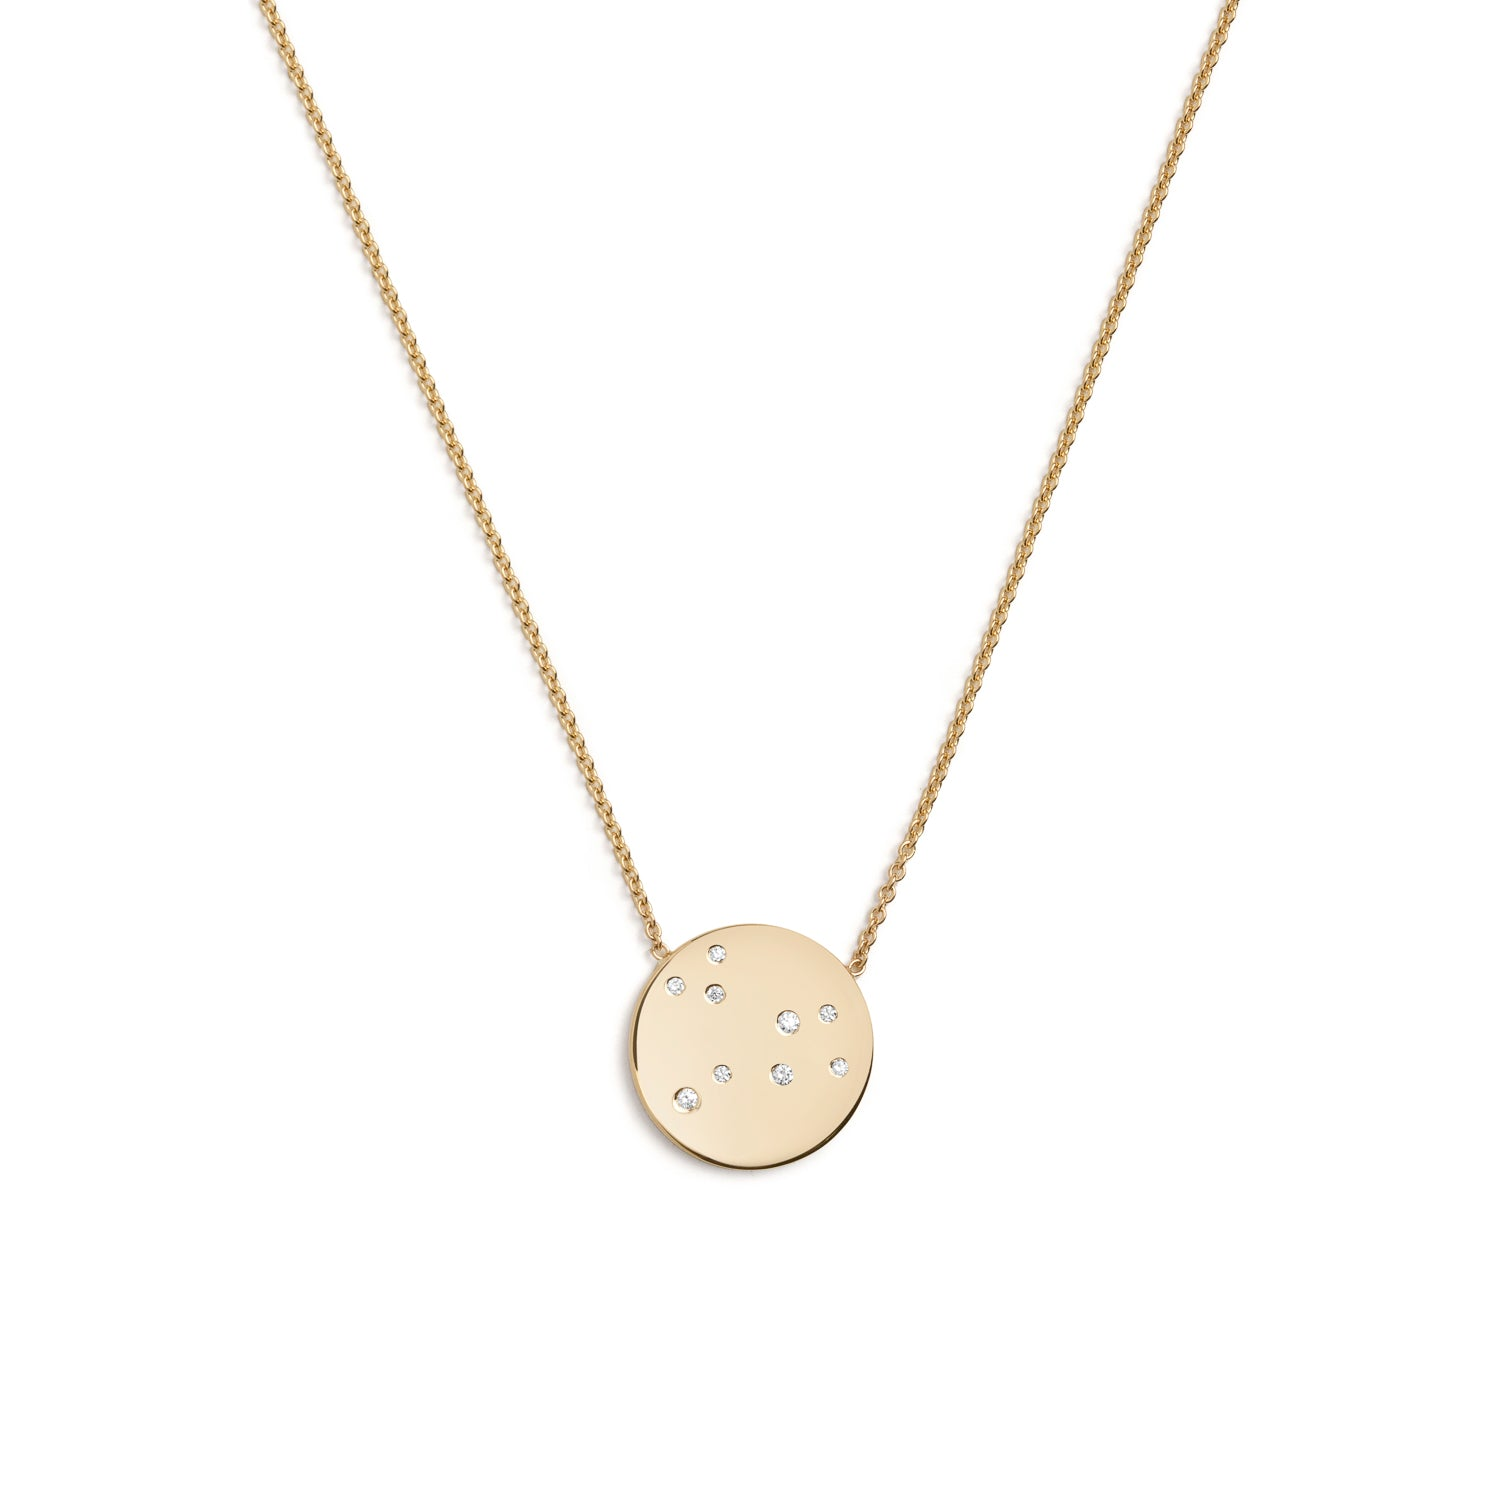 Aries Star Sign Necklace in Gold